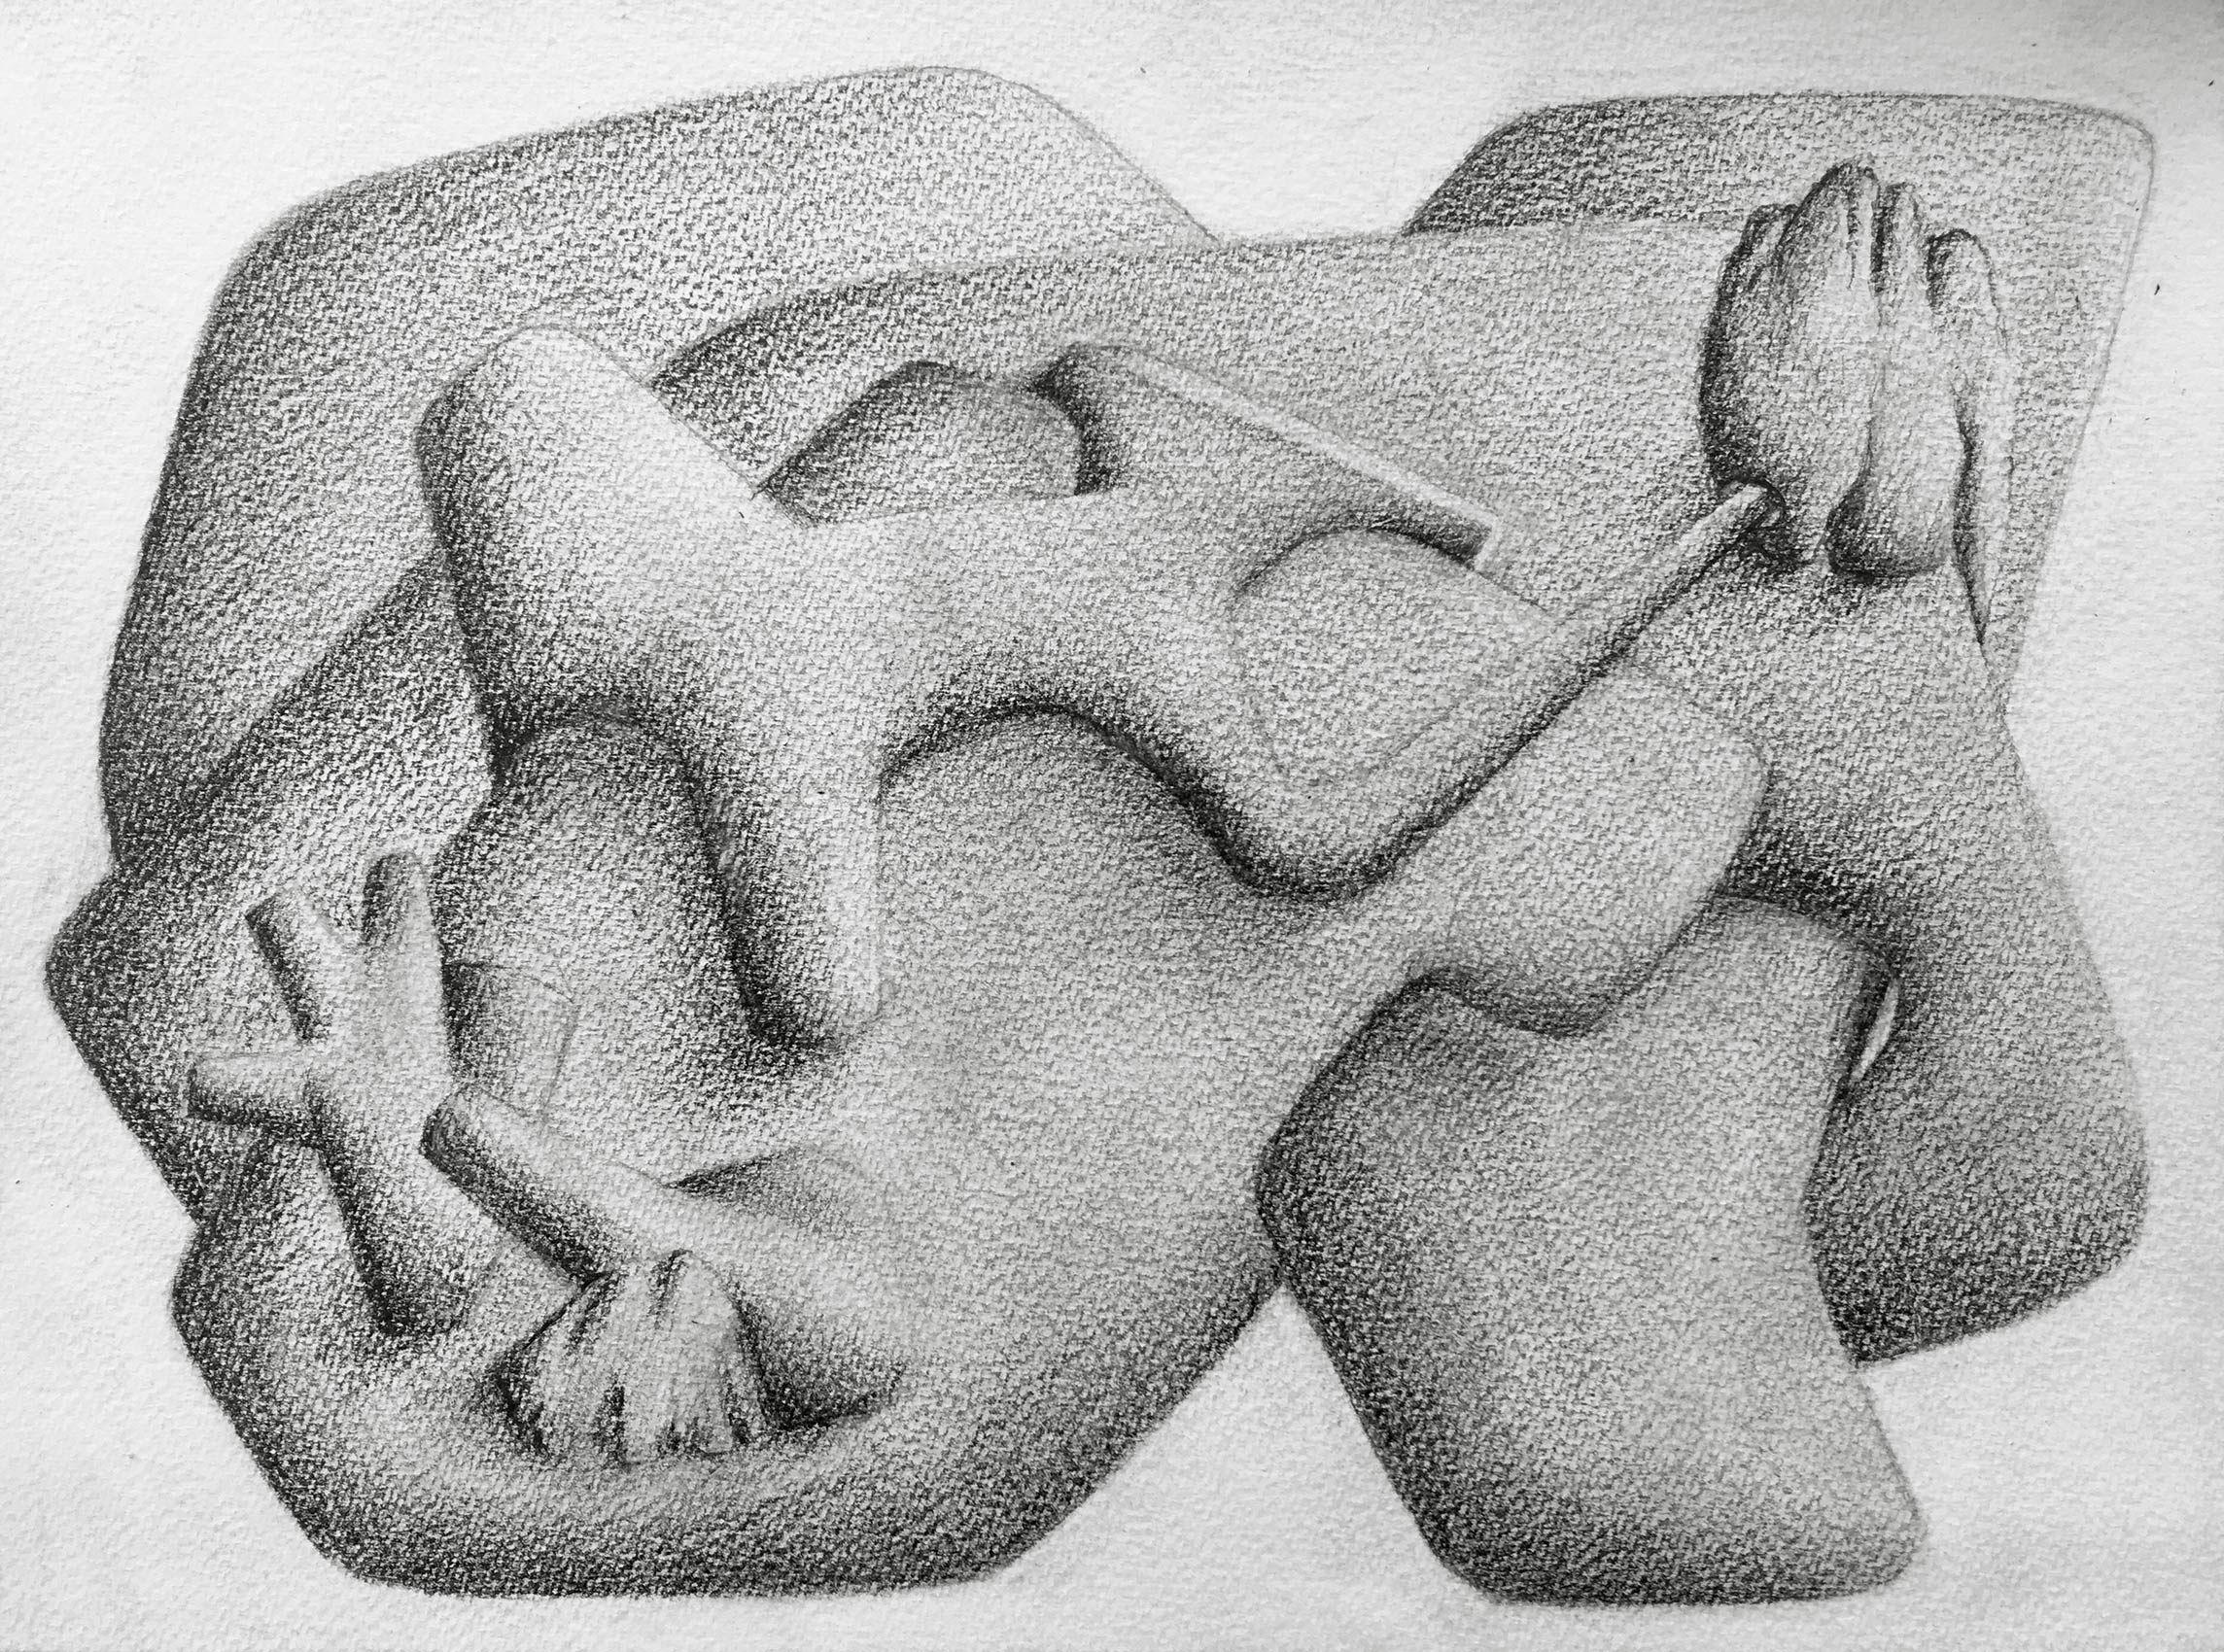 [No Title], N°DNT4,  2019, Pencil on paper, 24cm by 32cm, 2019 ©Pascal Demeester